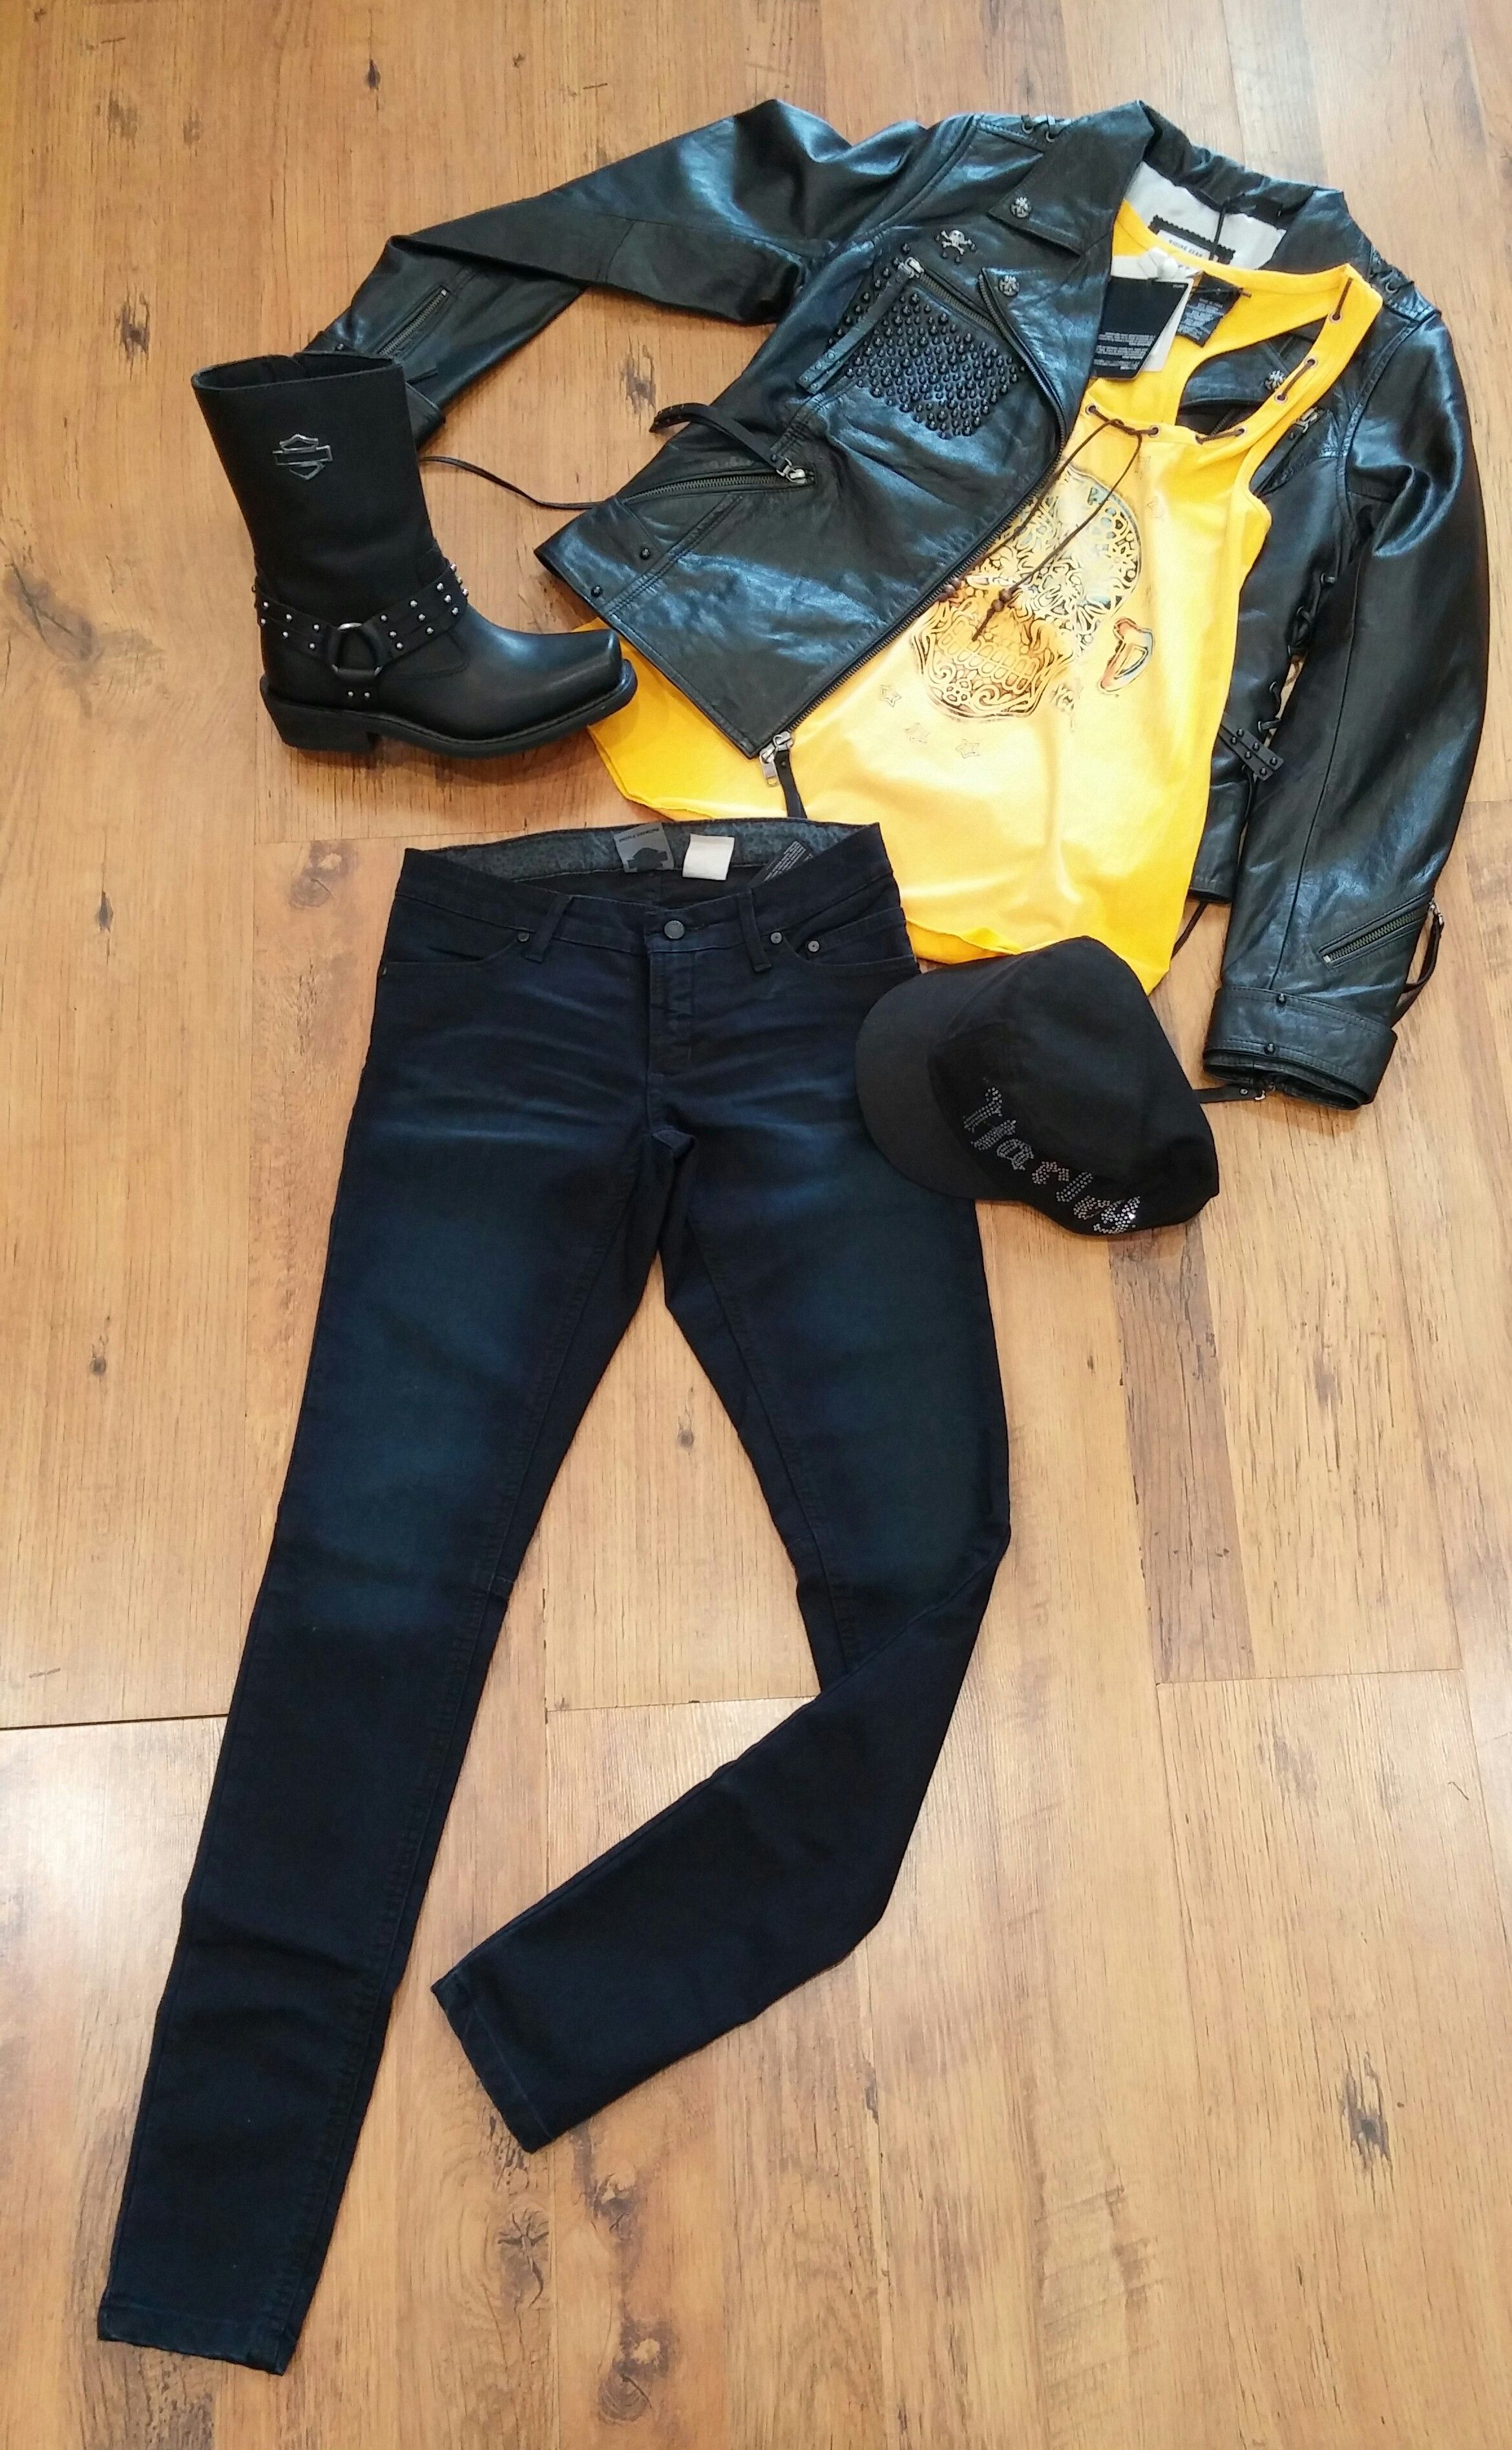 Outfit Ideas Harley Davidson Motorclothes Clothes Fashion Outfits